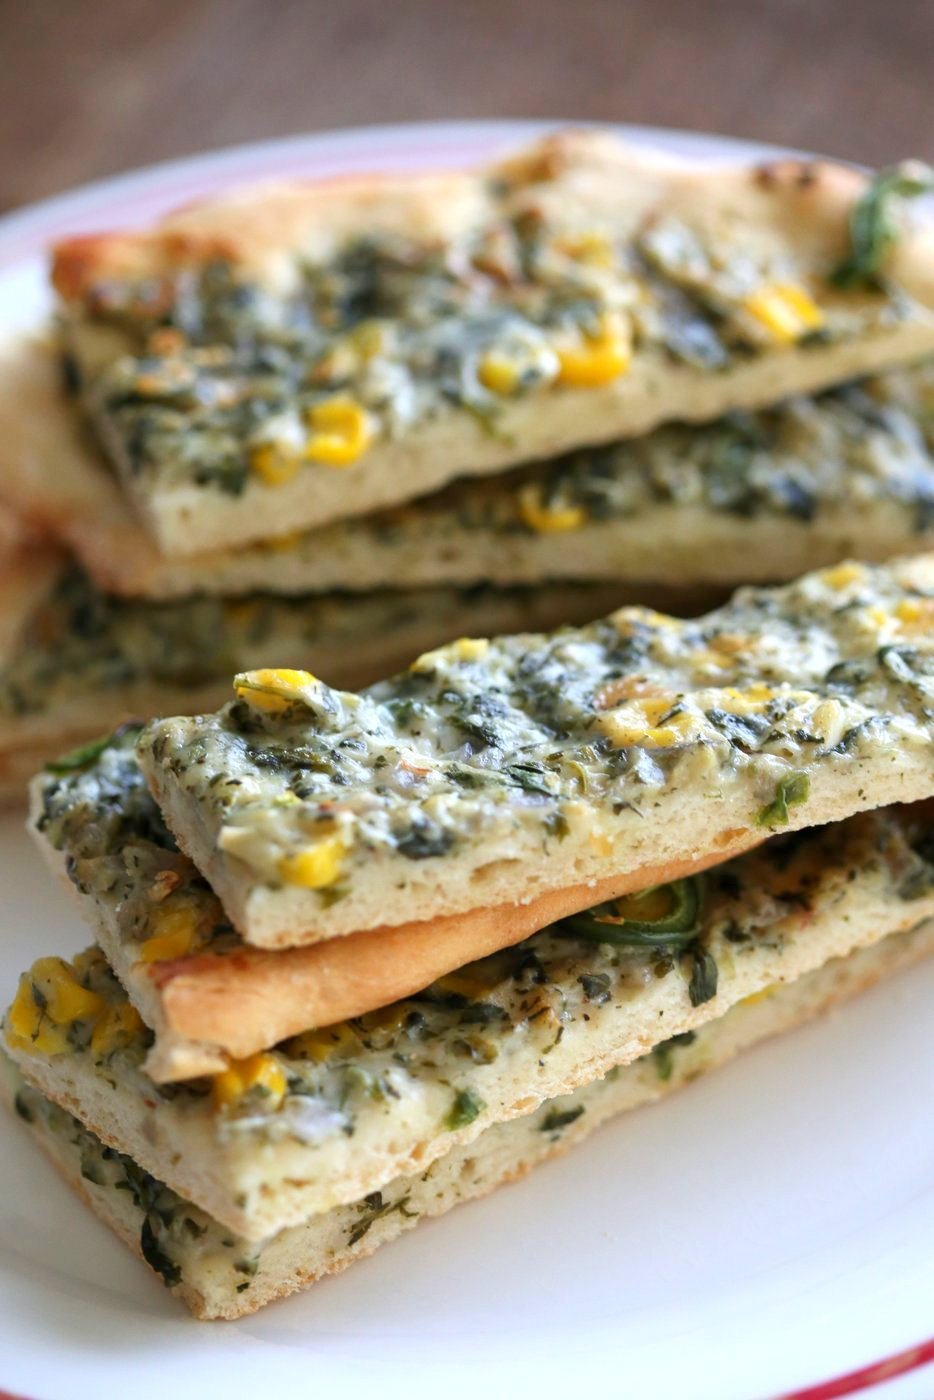 Vegan Spinach Dip Breadsticks. Creamy Corn and Spinach dip spread over pizza crust or puff pastry, bake, slice and serve. Easy Vegan Recipe. Can be gluten-free if served as a dip #vegan #veganricha #recipe #spinachdip | VeganRicha.com